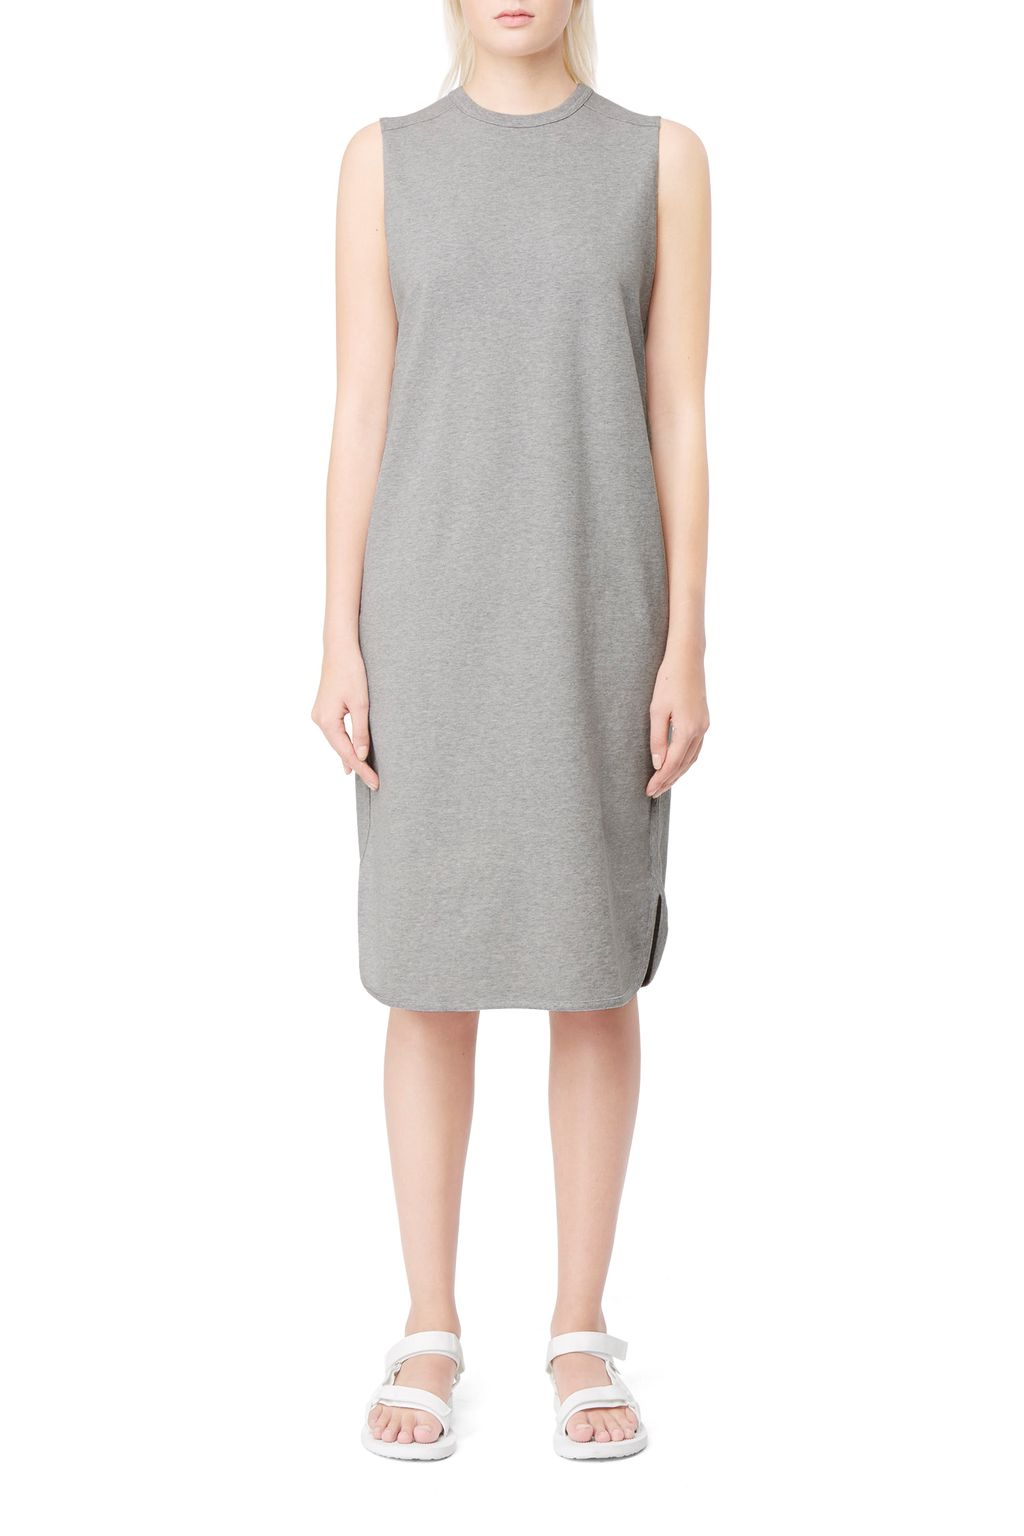 Weekday Grape Dress - Grey Free Shipping Cheapest Price Discount Pay With Visa Sale Visit New y4Tj7